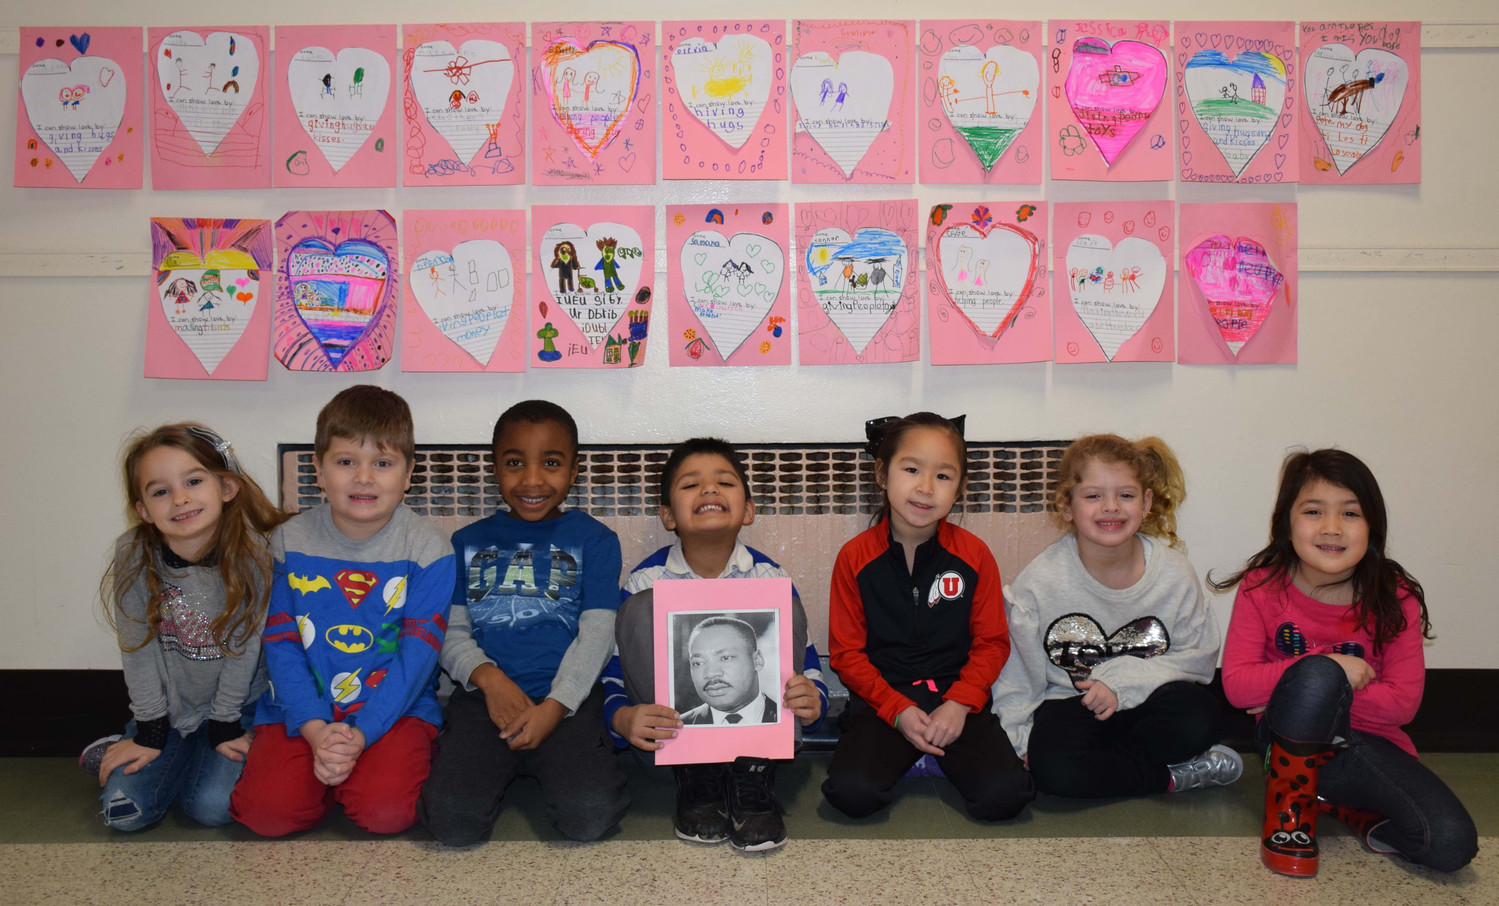 Dinkelmeyer kindergartners wrote about ways they could spread love.